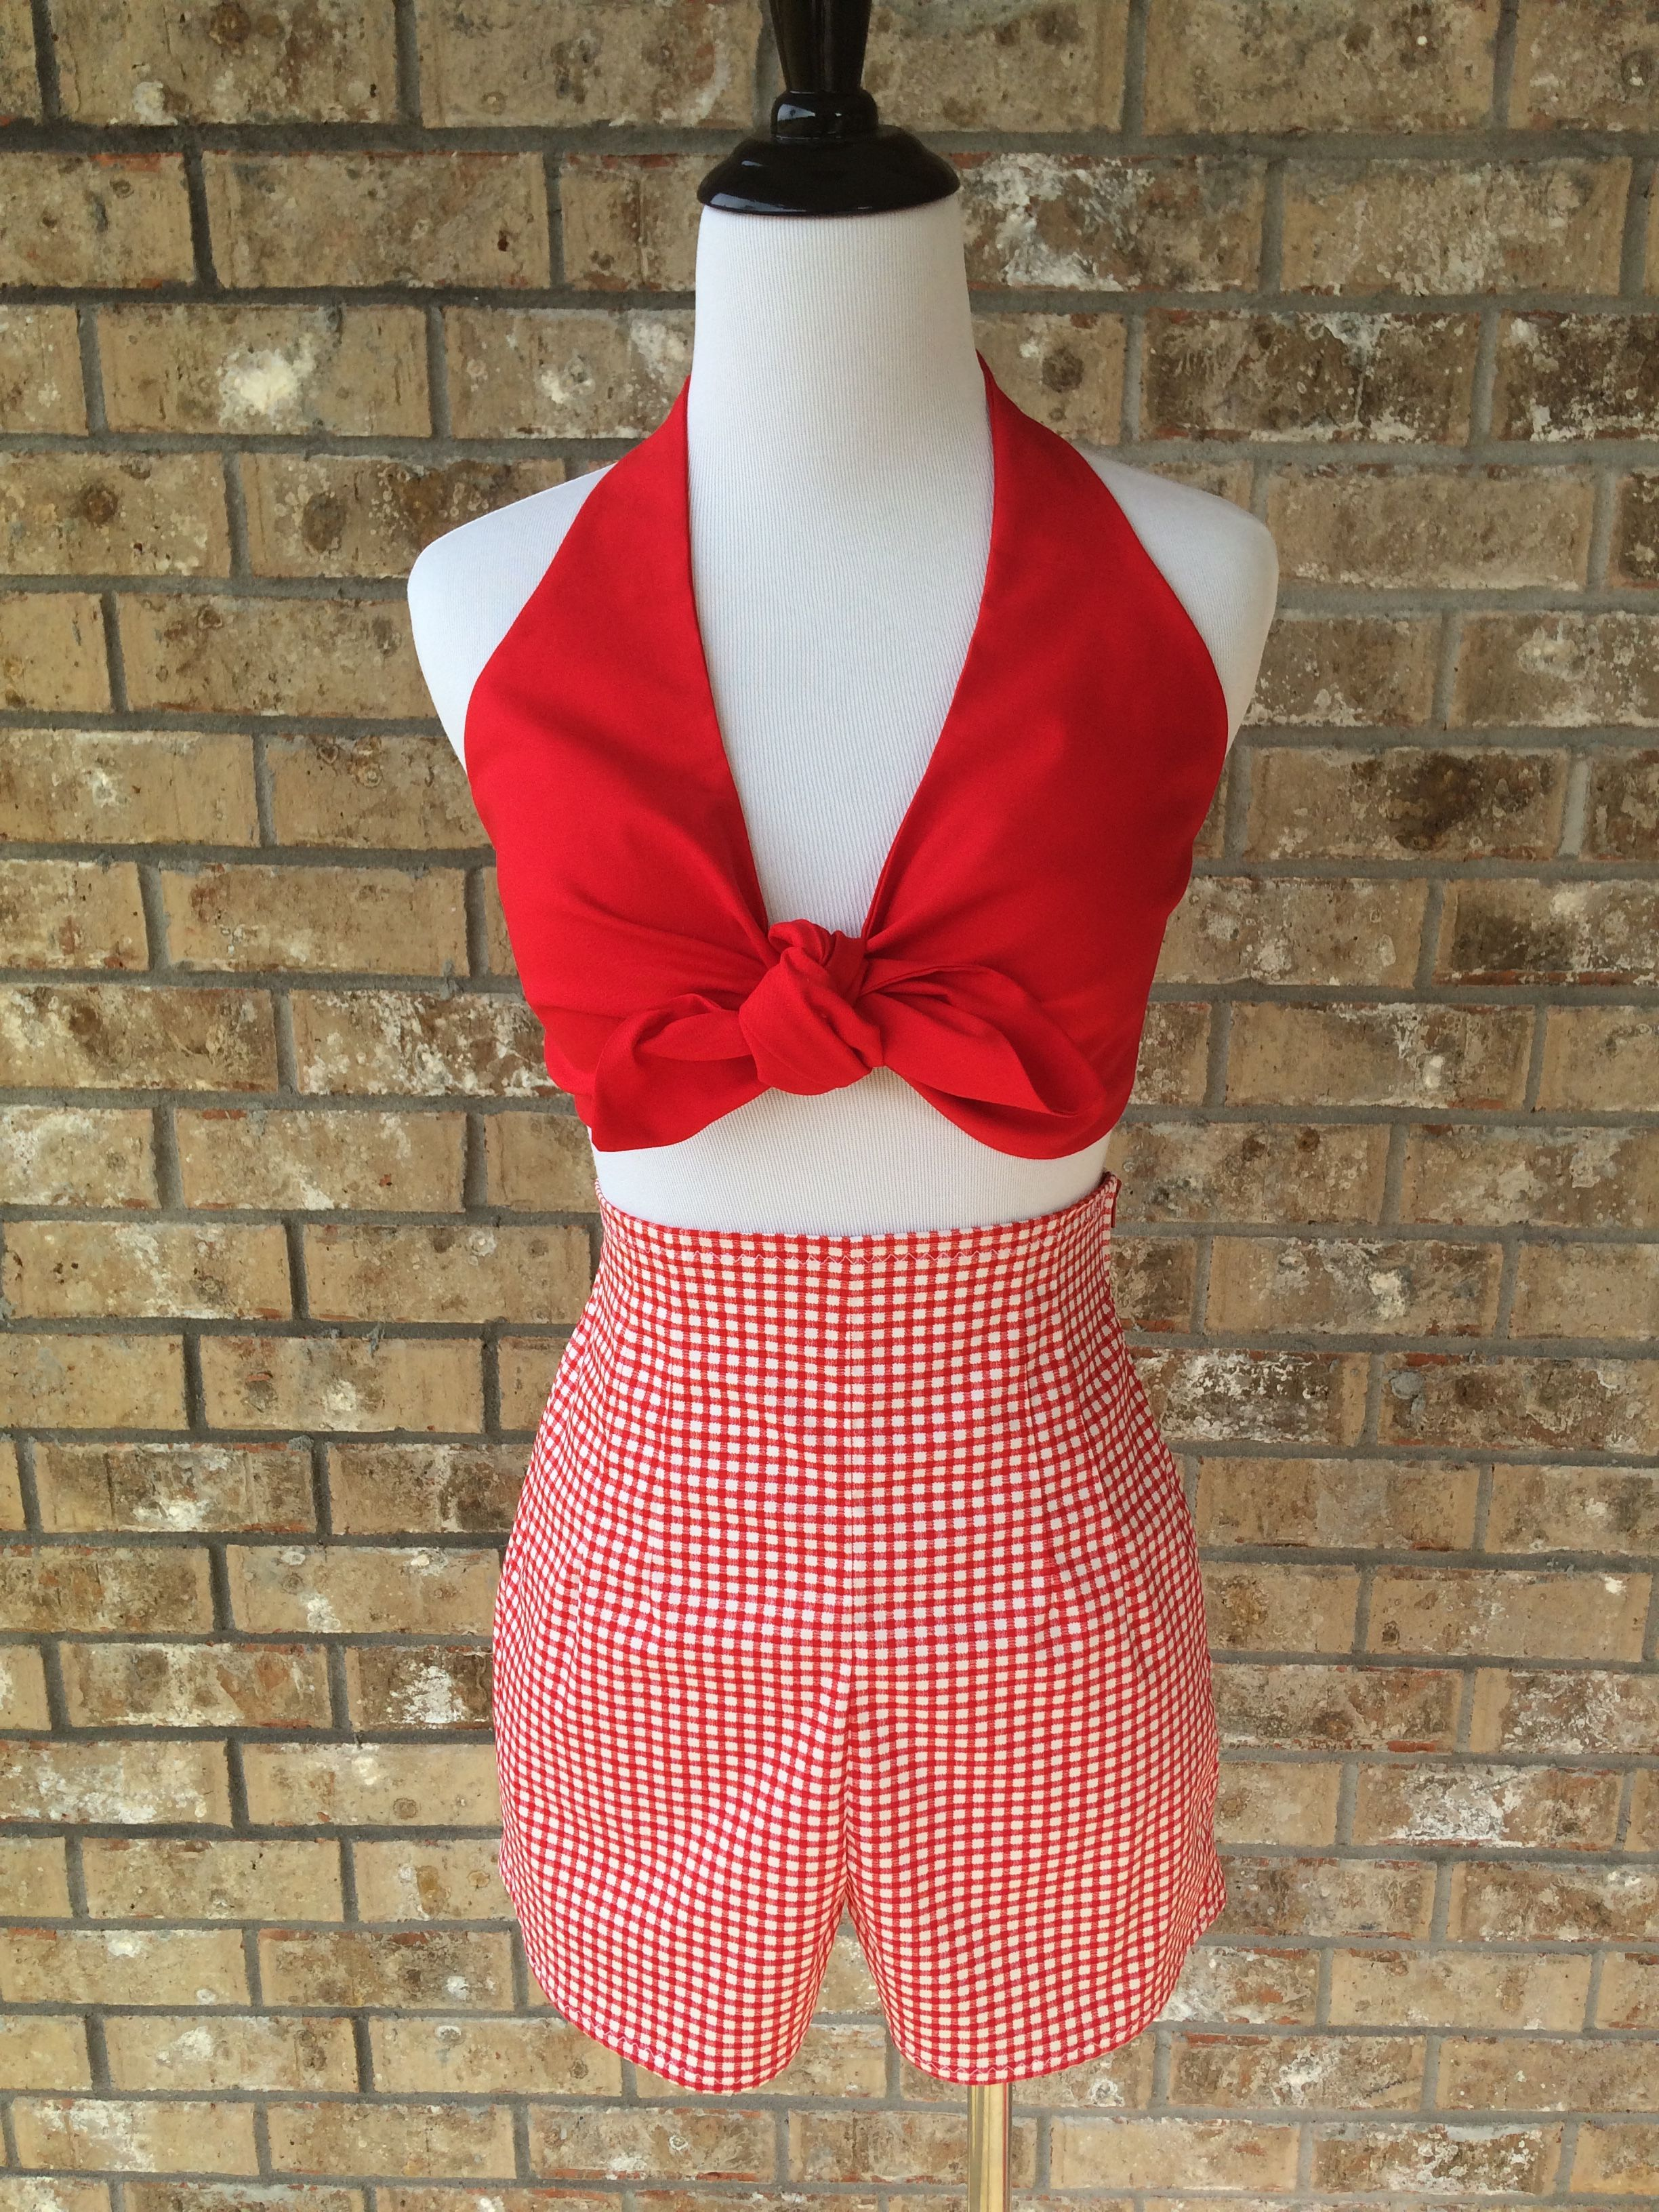 e3c298ecf1 My Handmade Jayne Retro Shorts in Red Gingham. Paired with my Reversible Daisy  Mae Tie